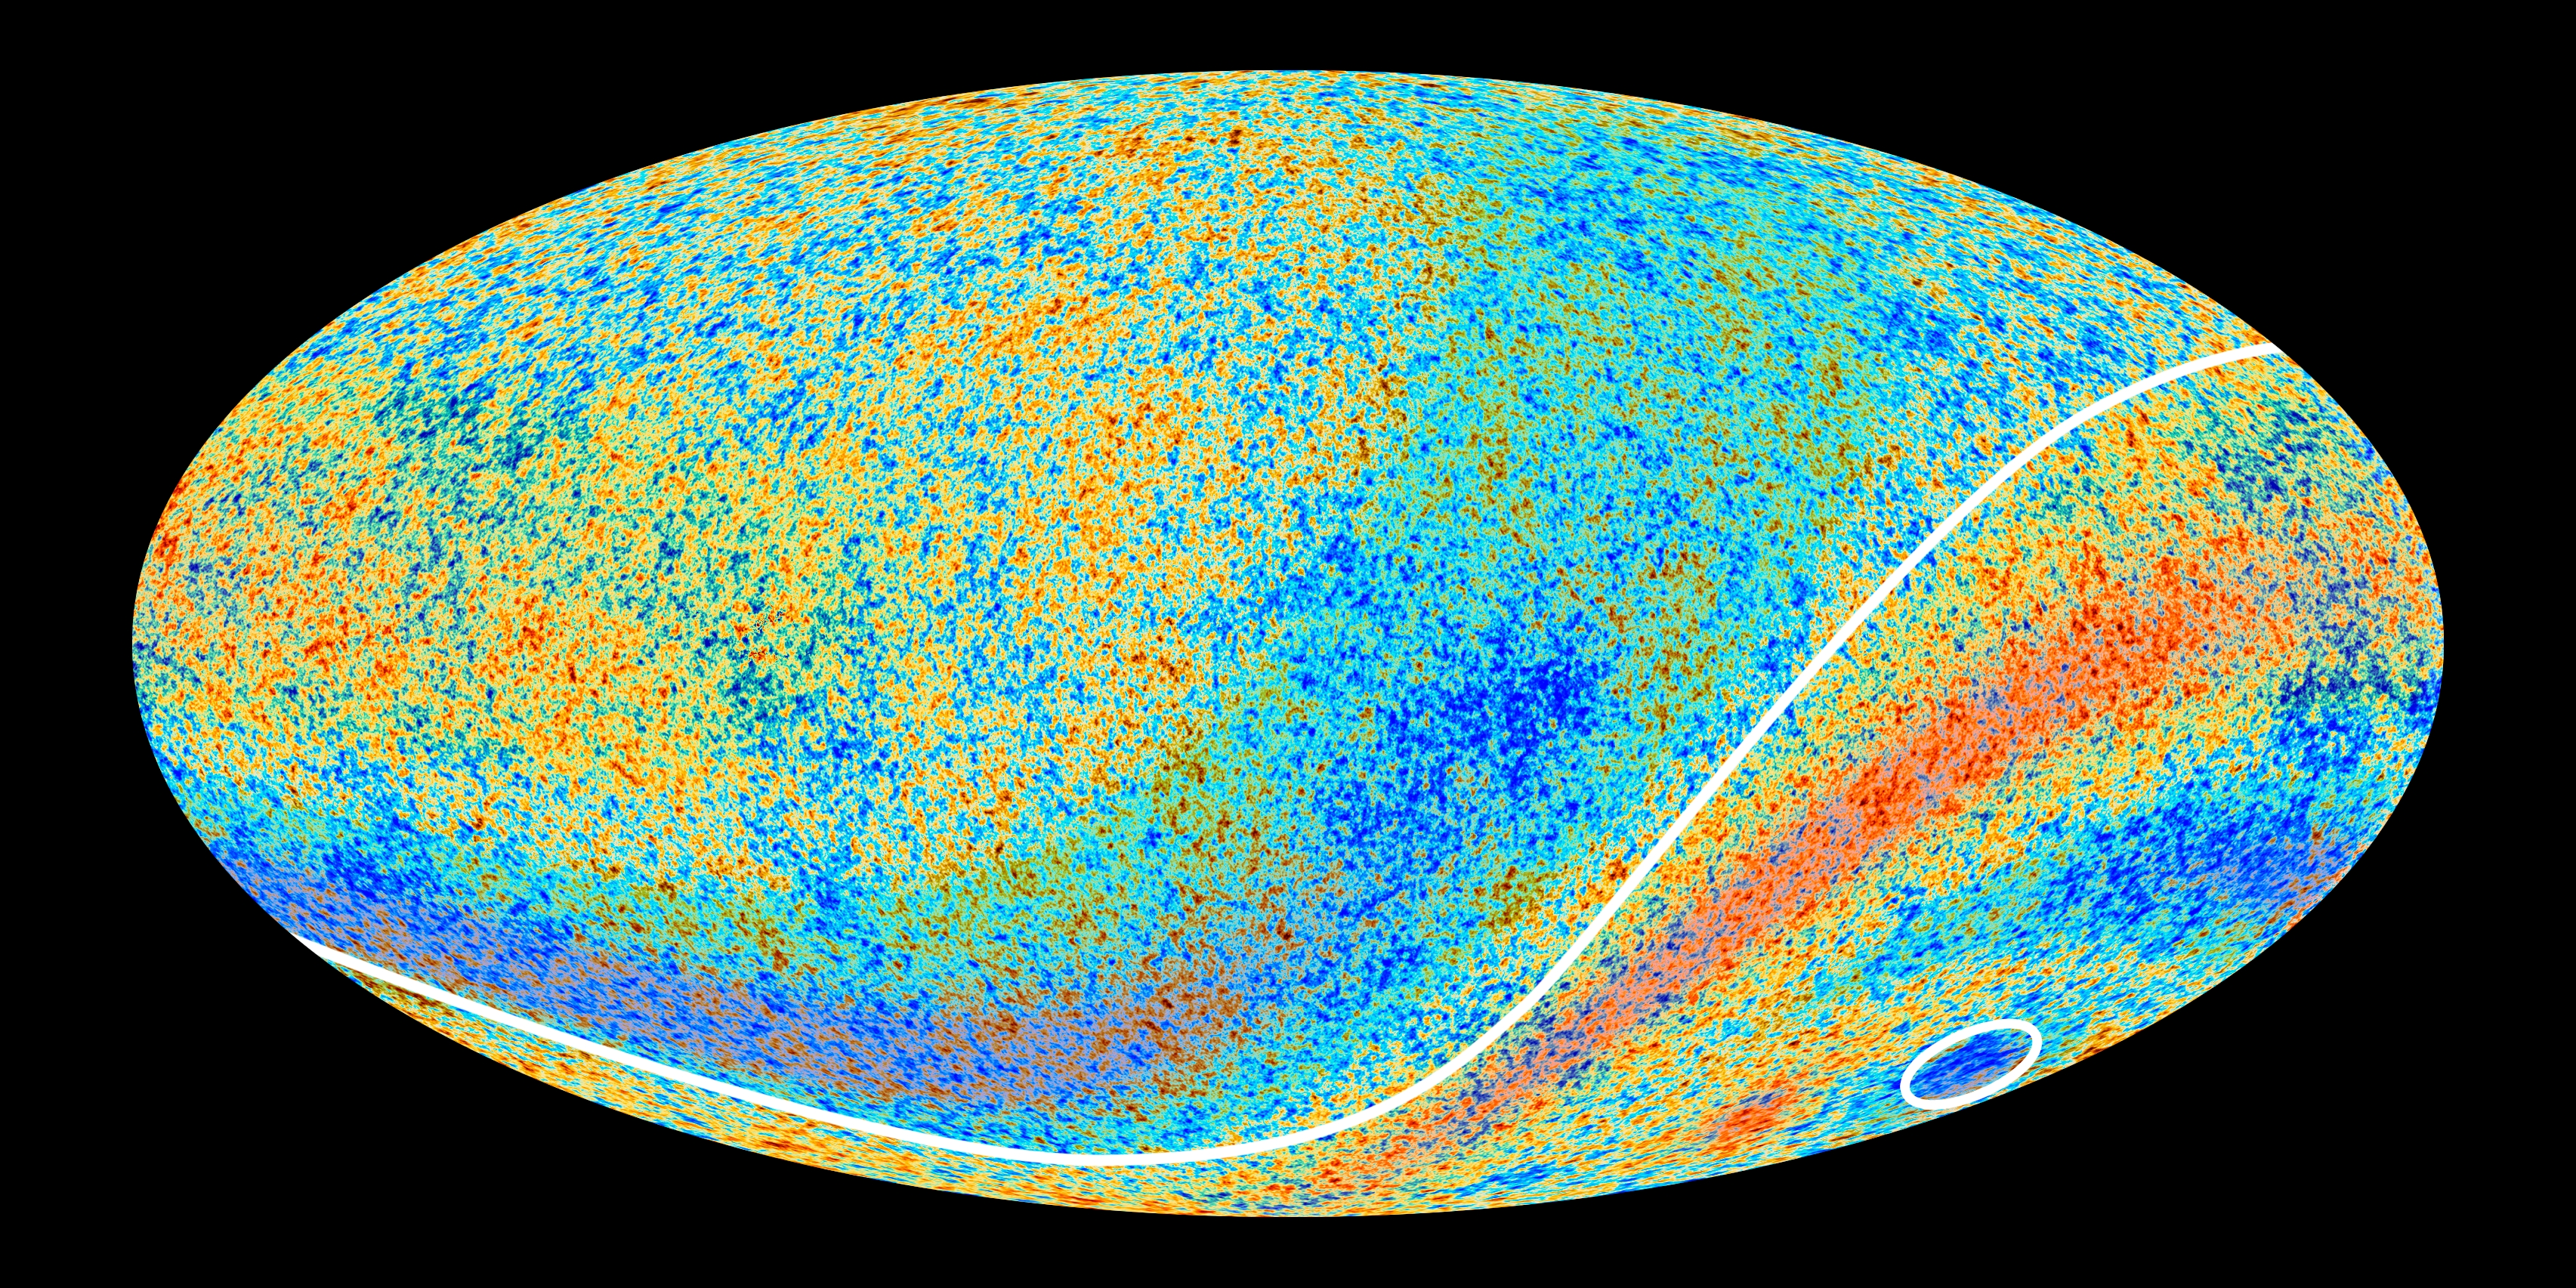 http://sci.esa.int/science-e-media/img/67/Planck_anomalies_Bianchi_on_CMB_orig.jpg